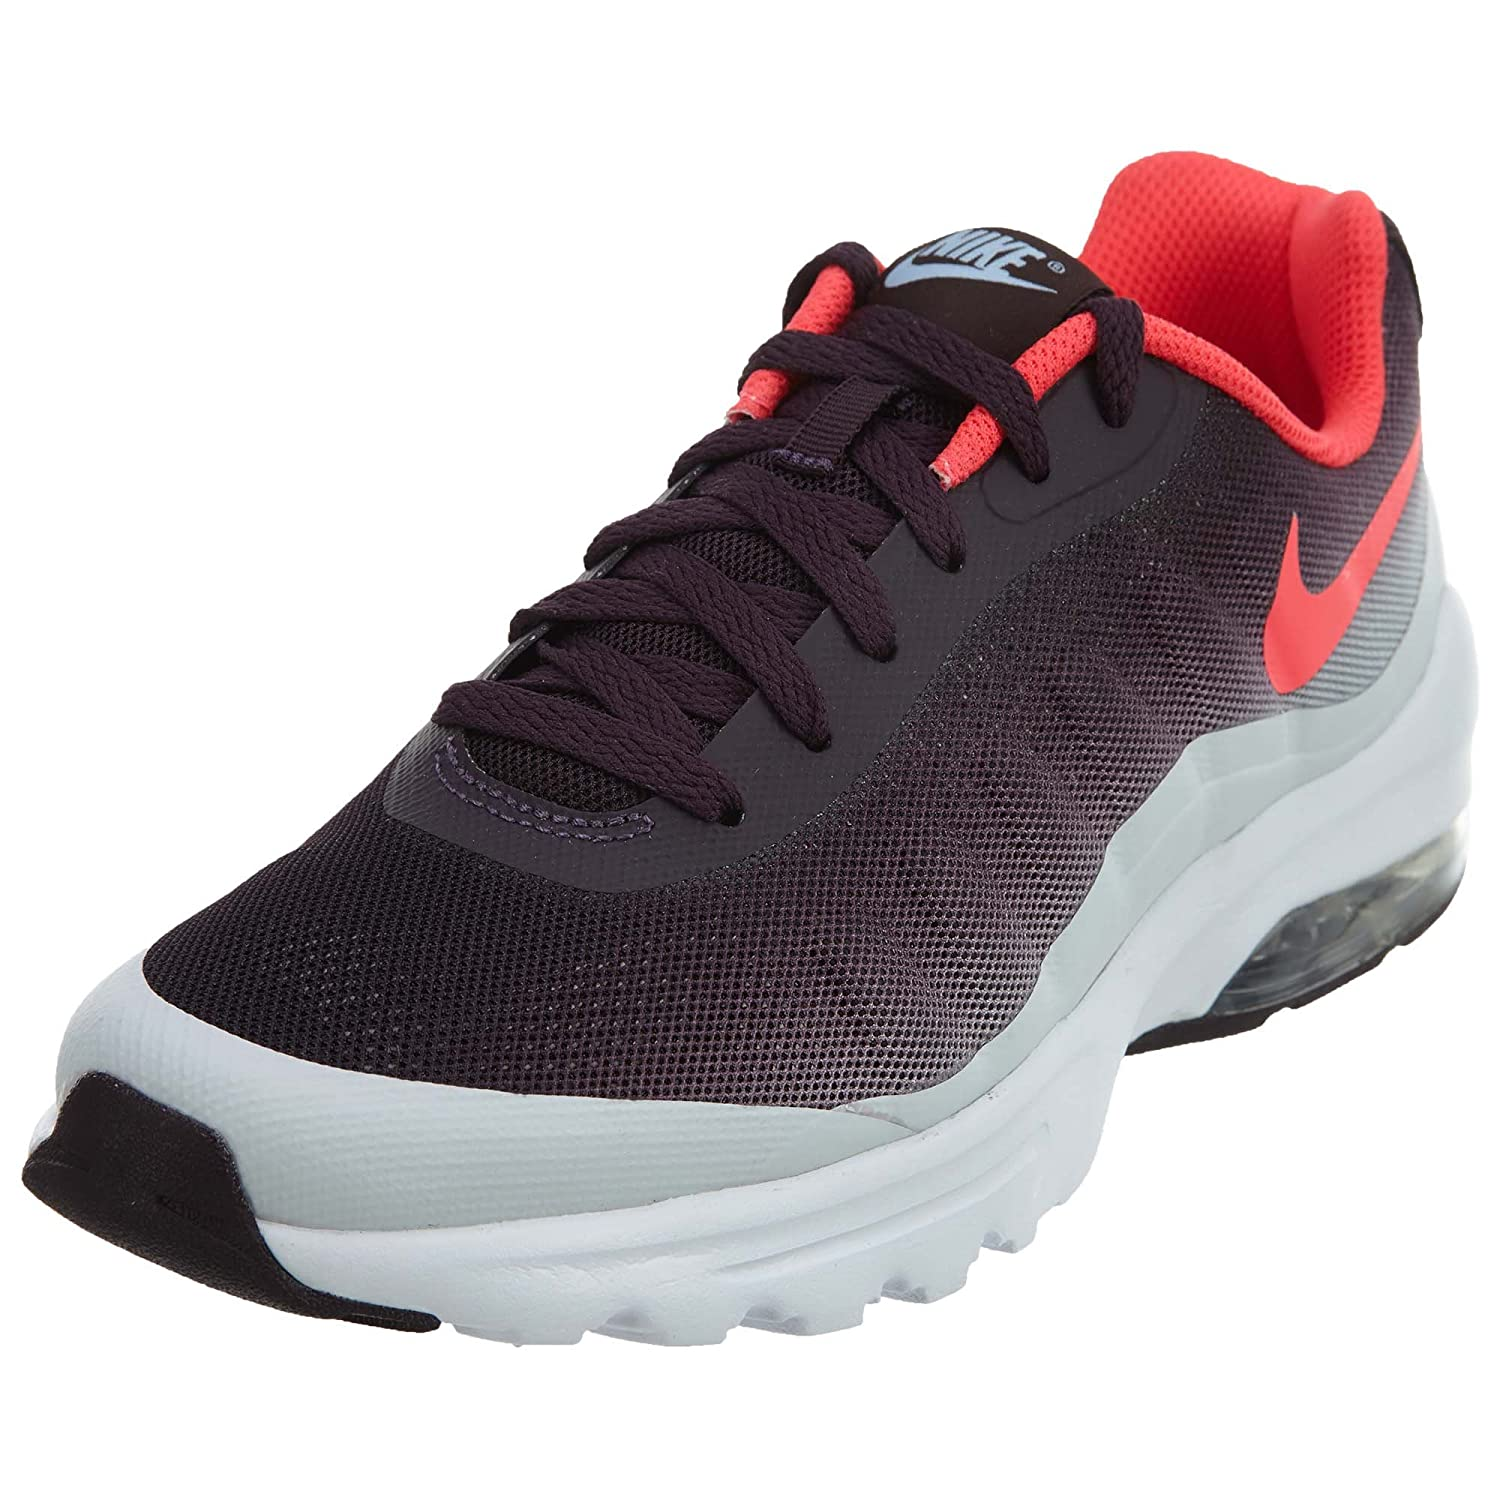 NEW NIKE Air Max Invigor Print Men's Running Shoes SOLAR RED